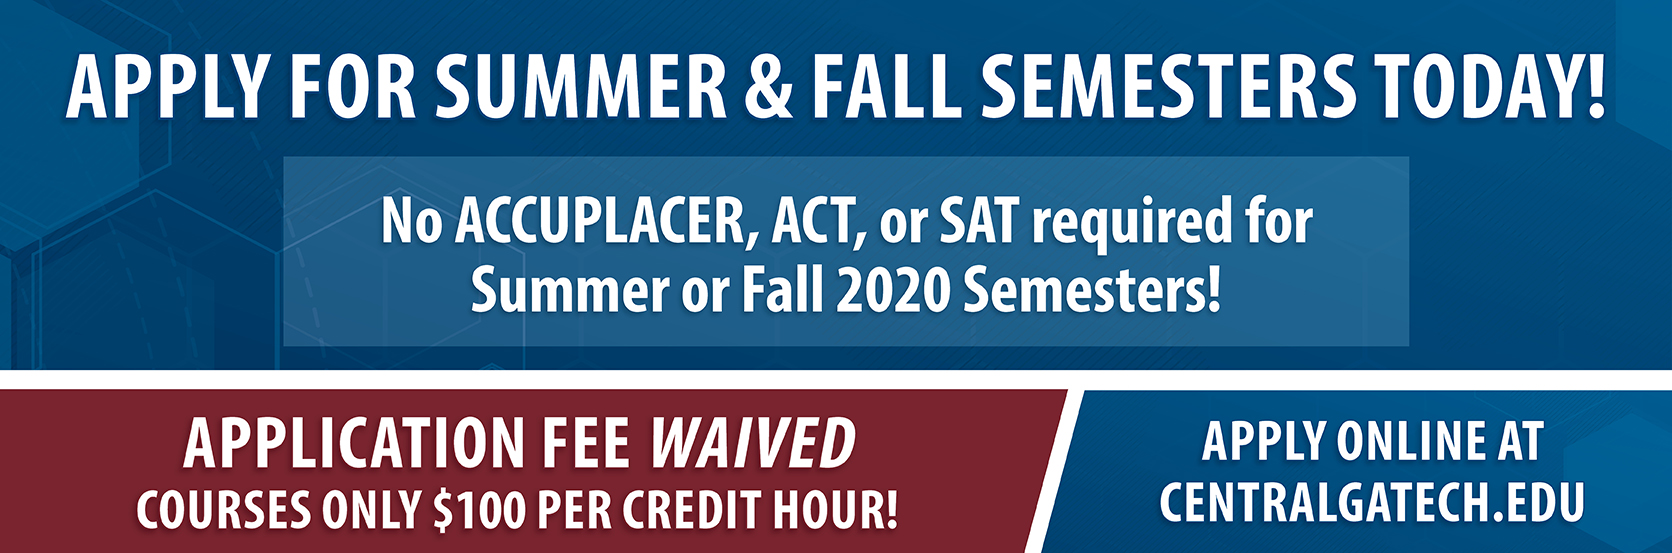 Summer and Fall Application Fees and testing waiver